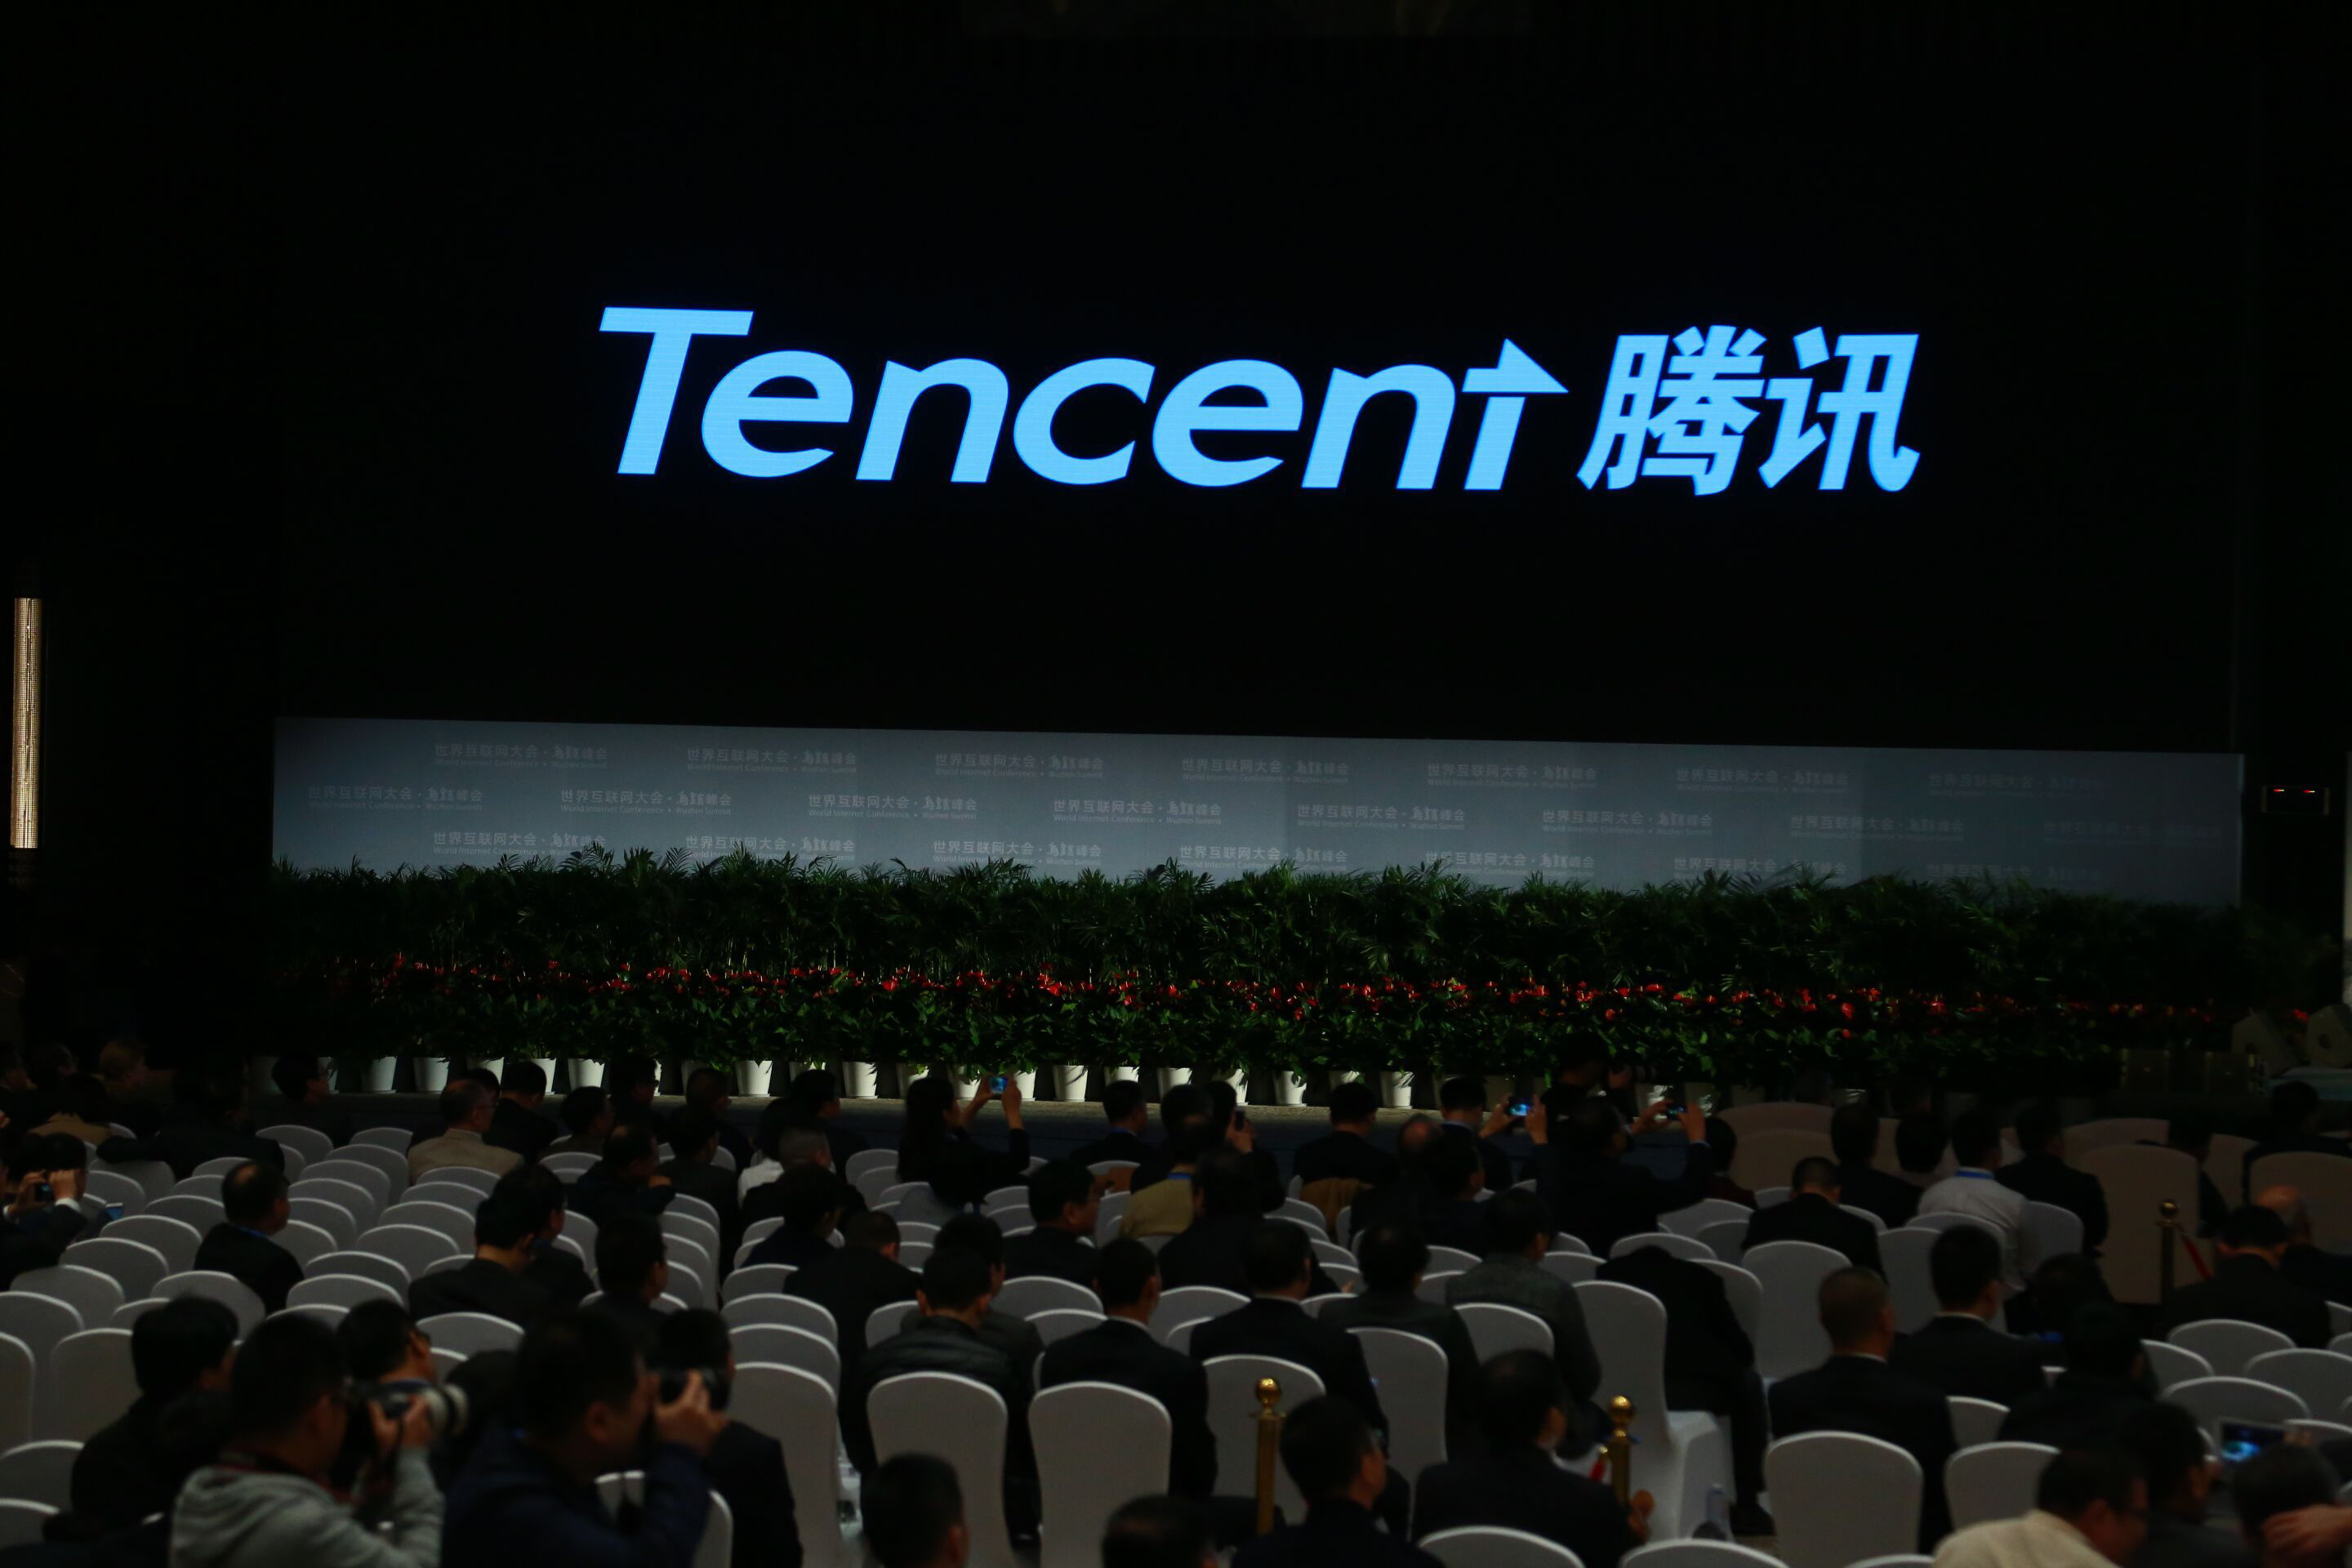 Tencent is reportedly testing its own autonomous driving system